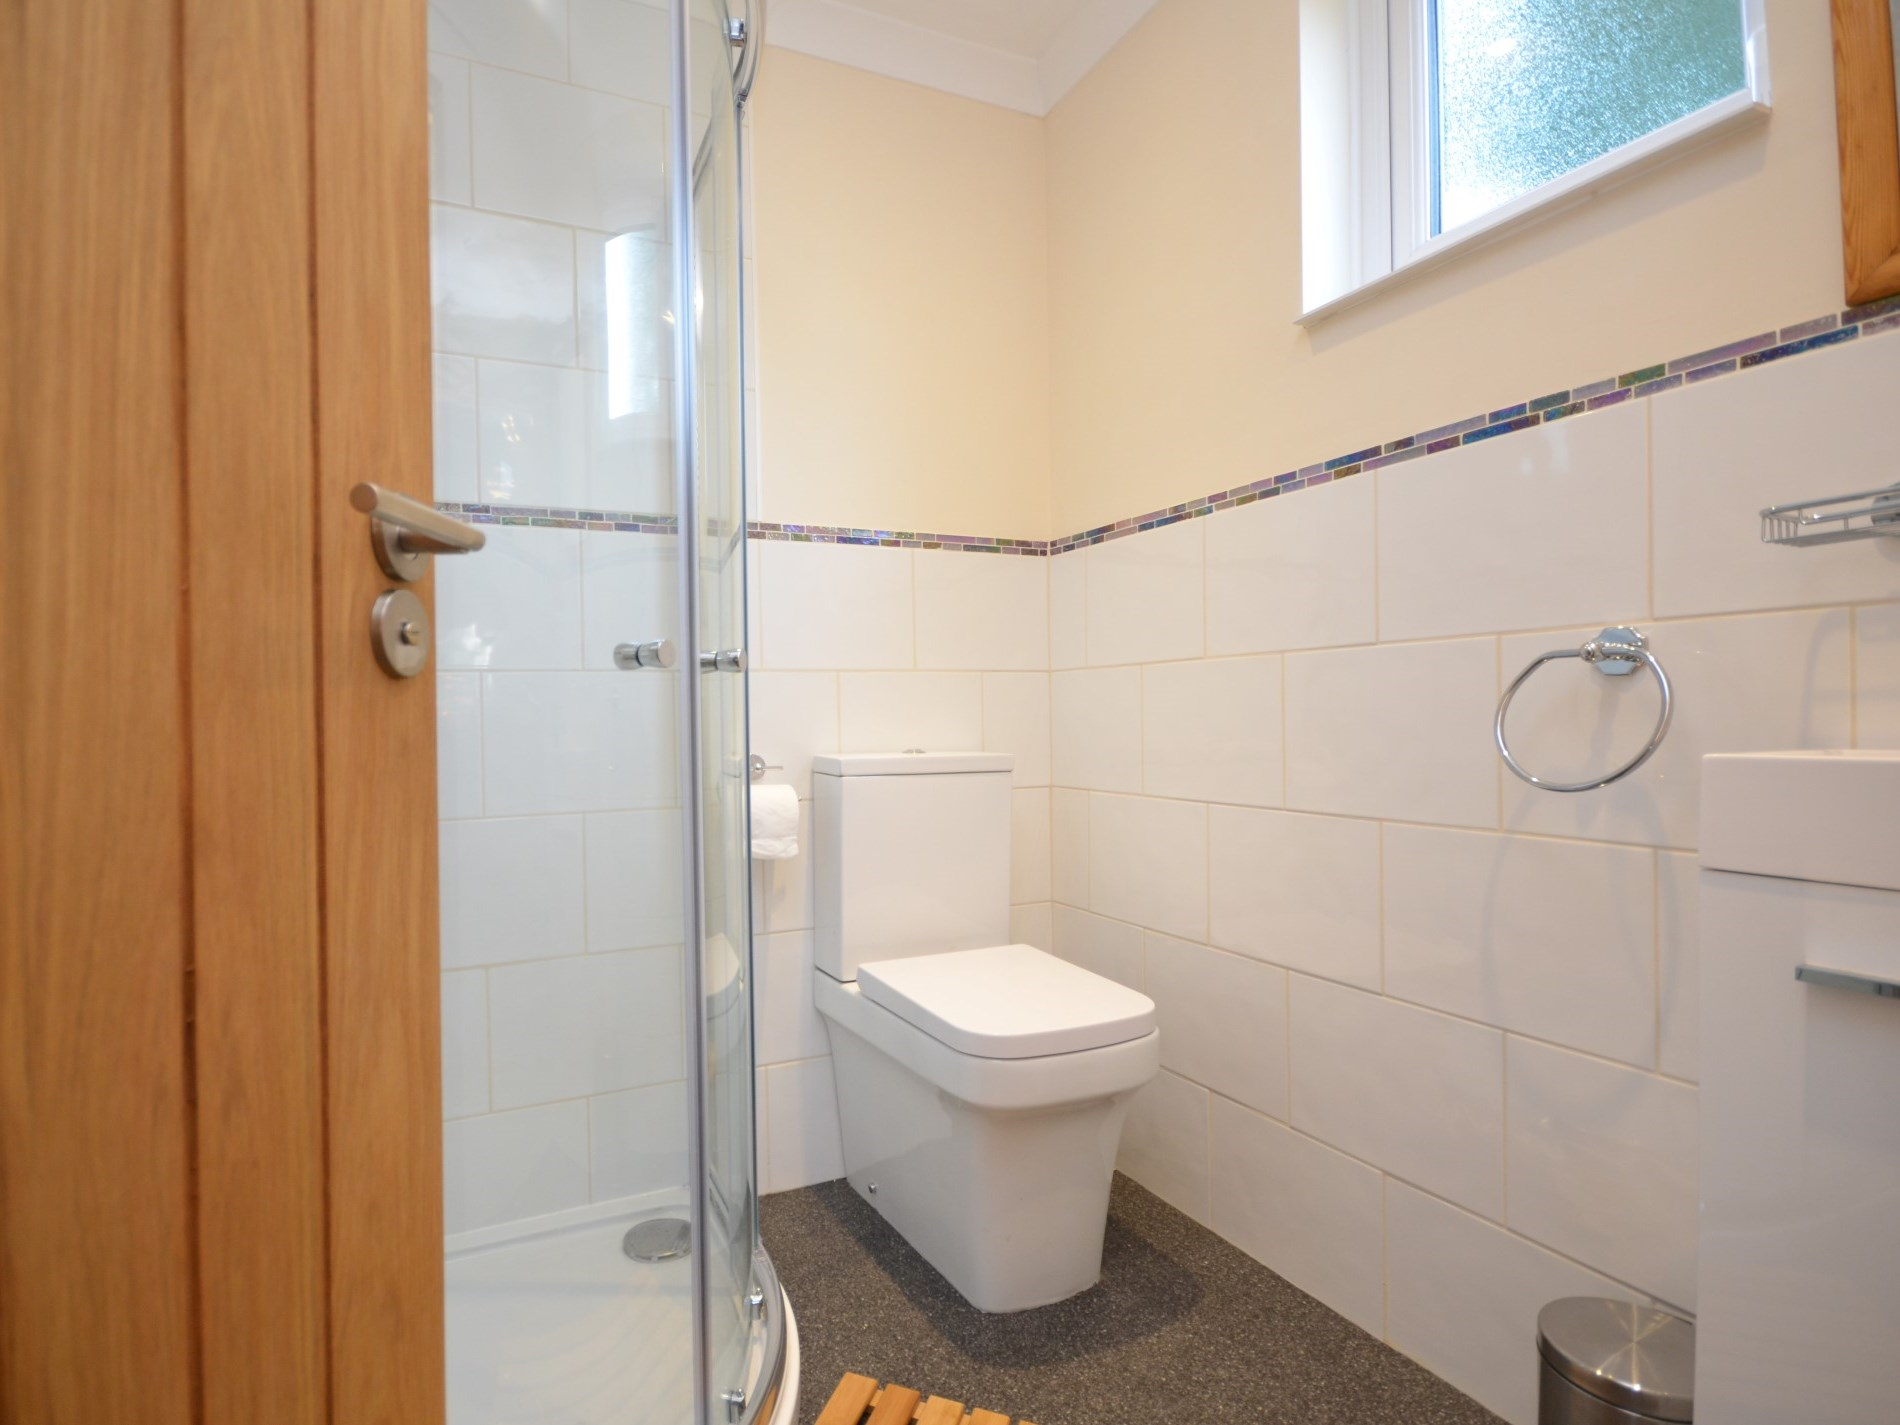 1 Bedroom Cottage in Norwich, East Anglia